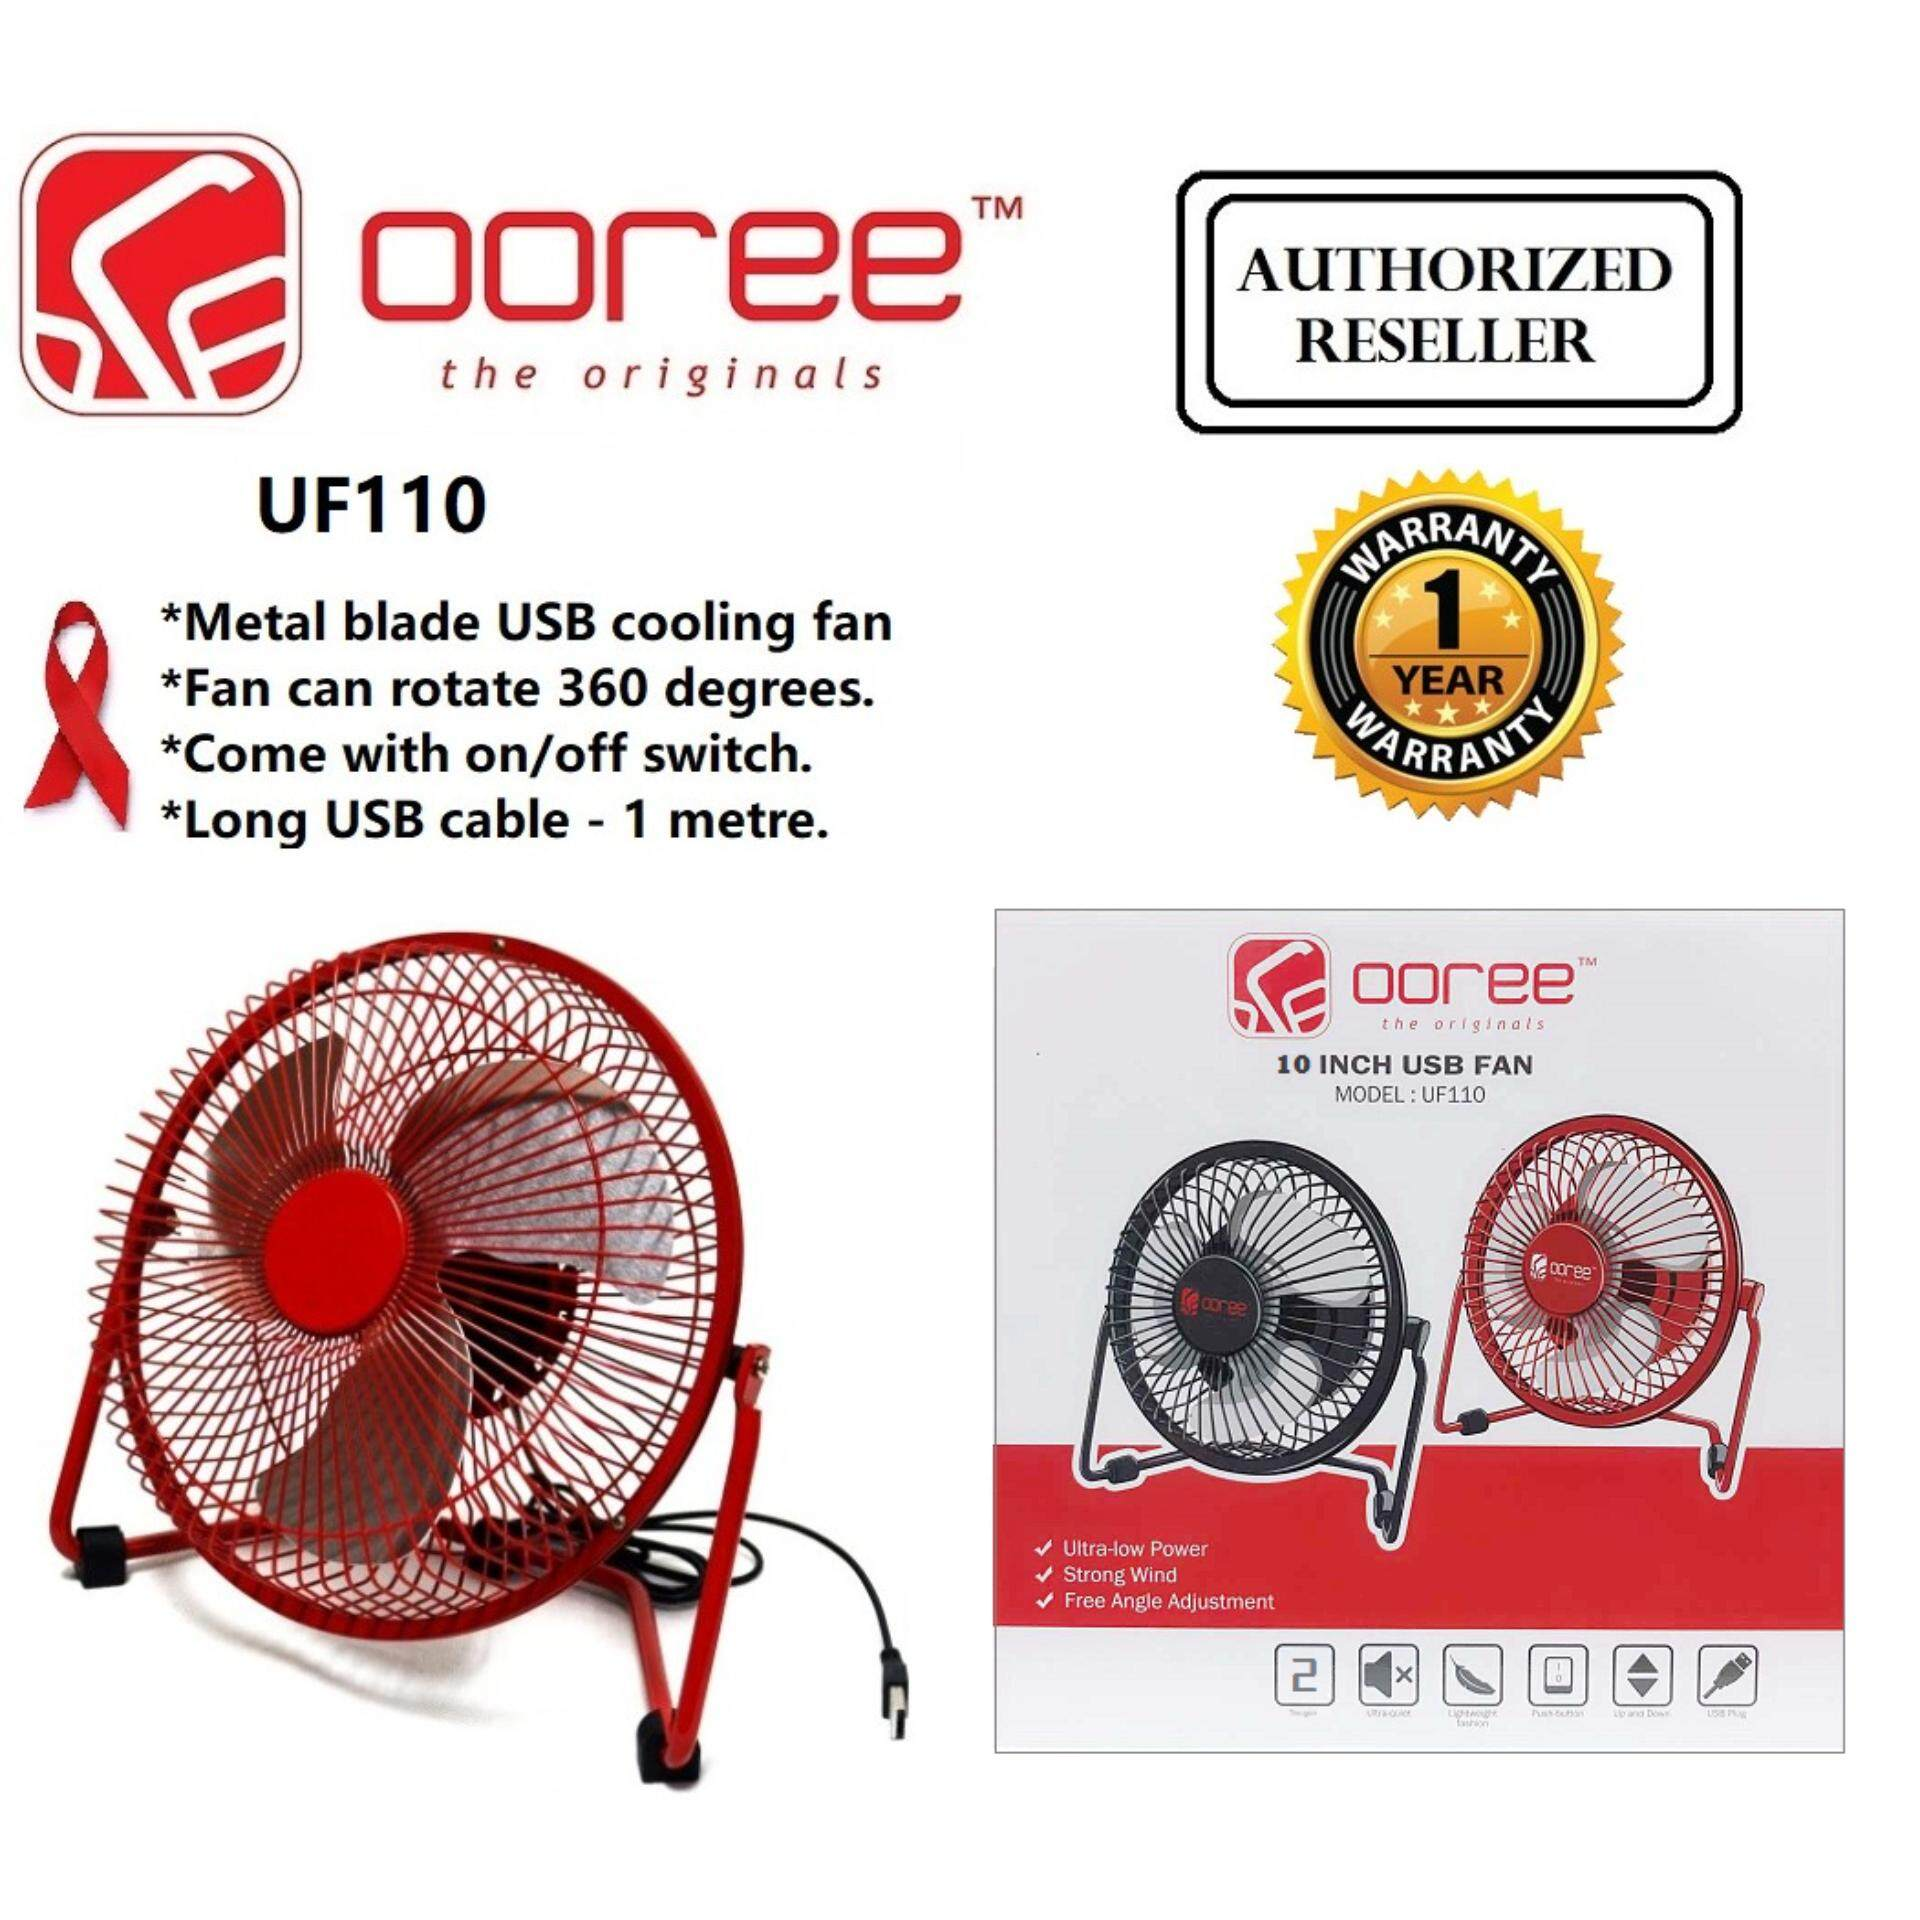 GENUINE OOREE PREMIUM QUALITY 10 USB FAN 2 GEARS BLACK & RED COLOR 23cm*10cm*24cm - UF110 Malaysia